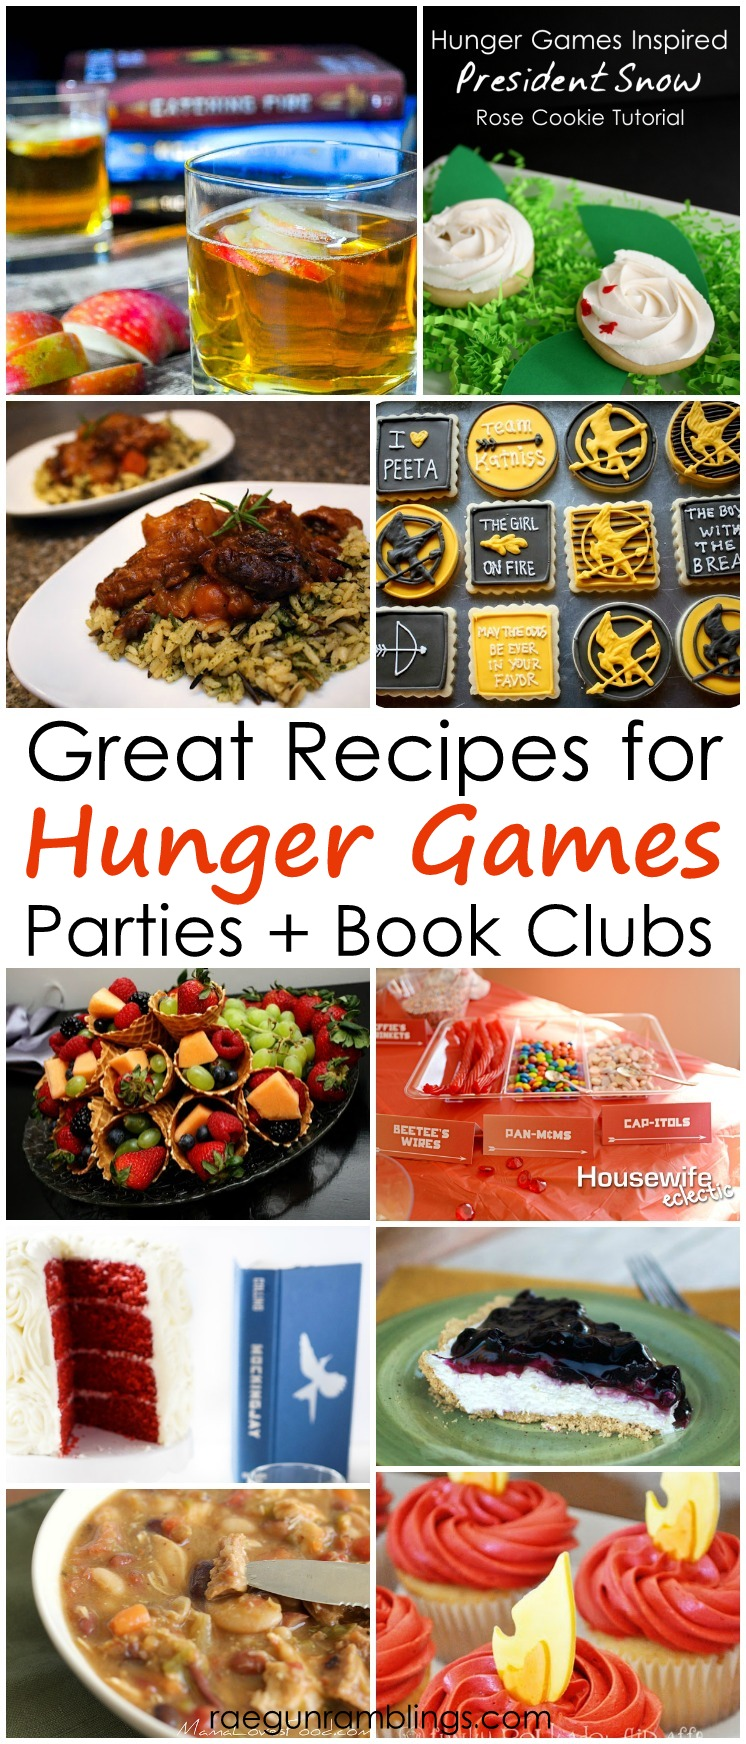 I love it! So many great Hunger Games recipes. Great for parties, book clubs or every day